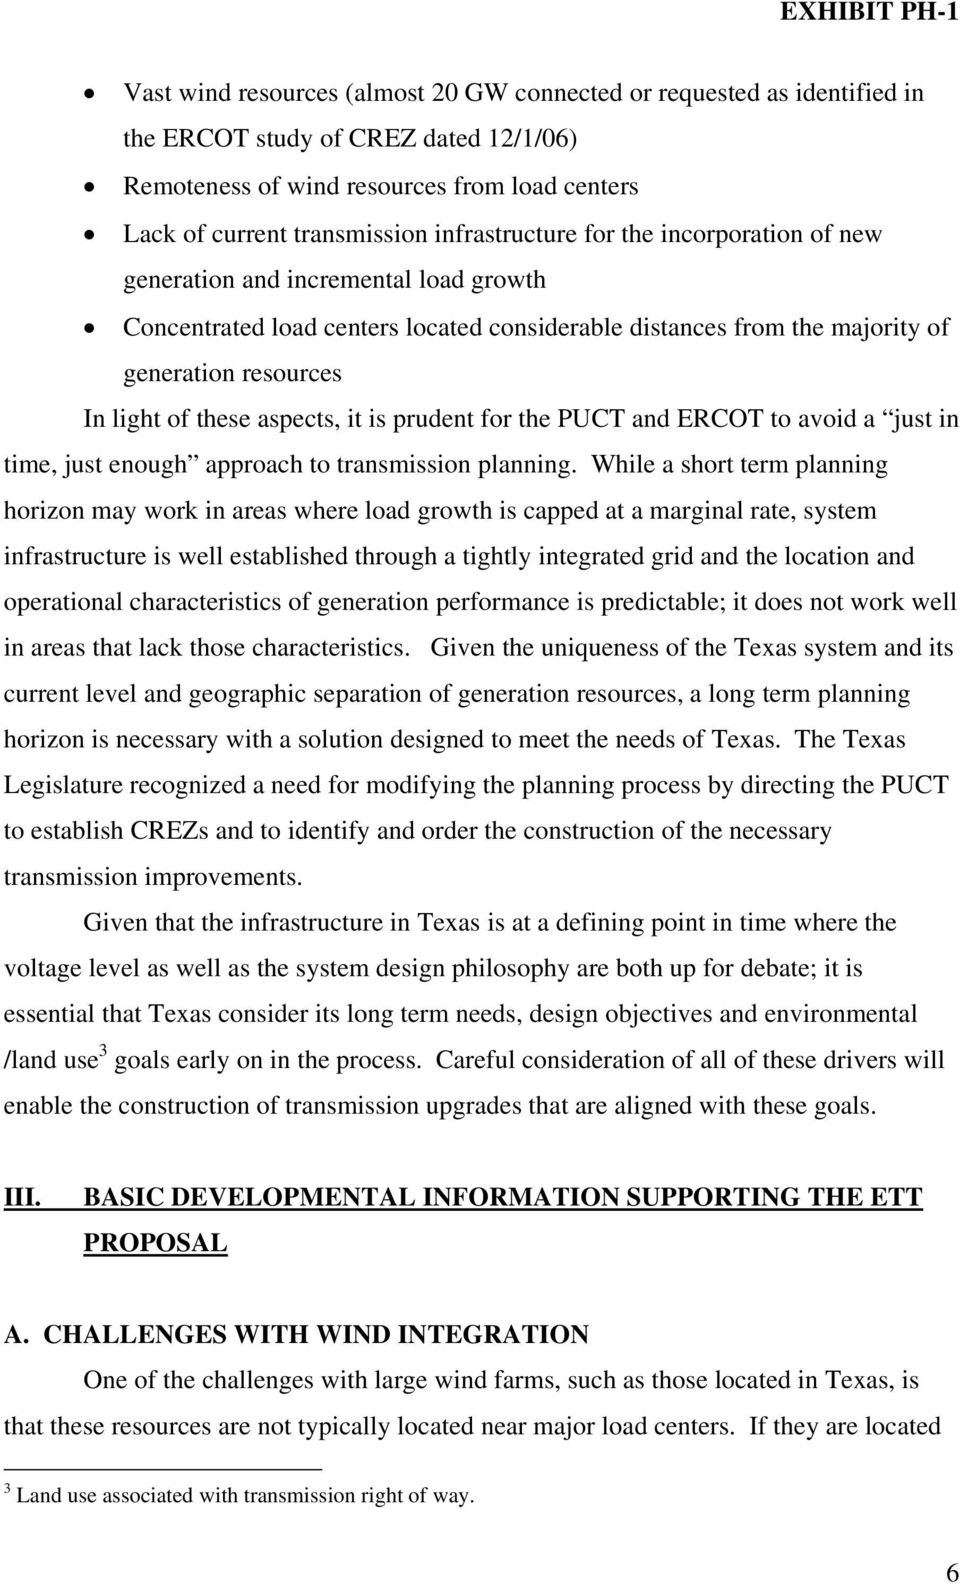 aspects, it is prudent for the PUCT and ERCOT to avoid a just in time, just enough approach to transmission planning.